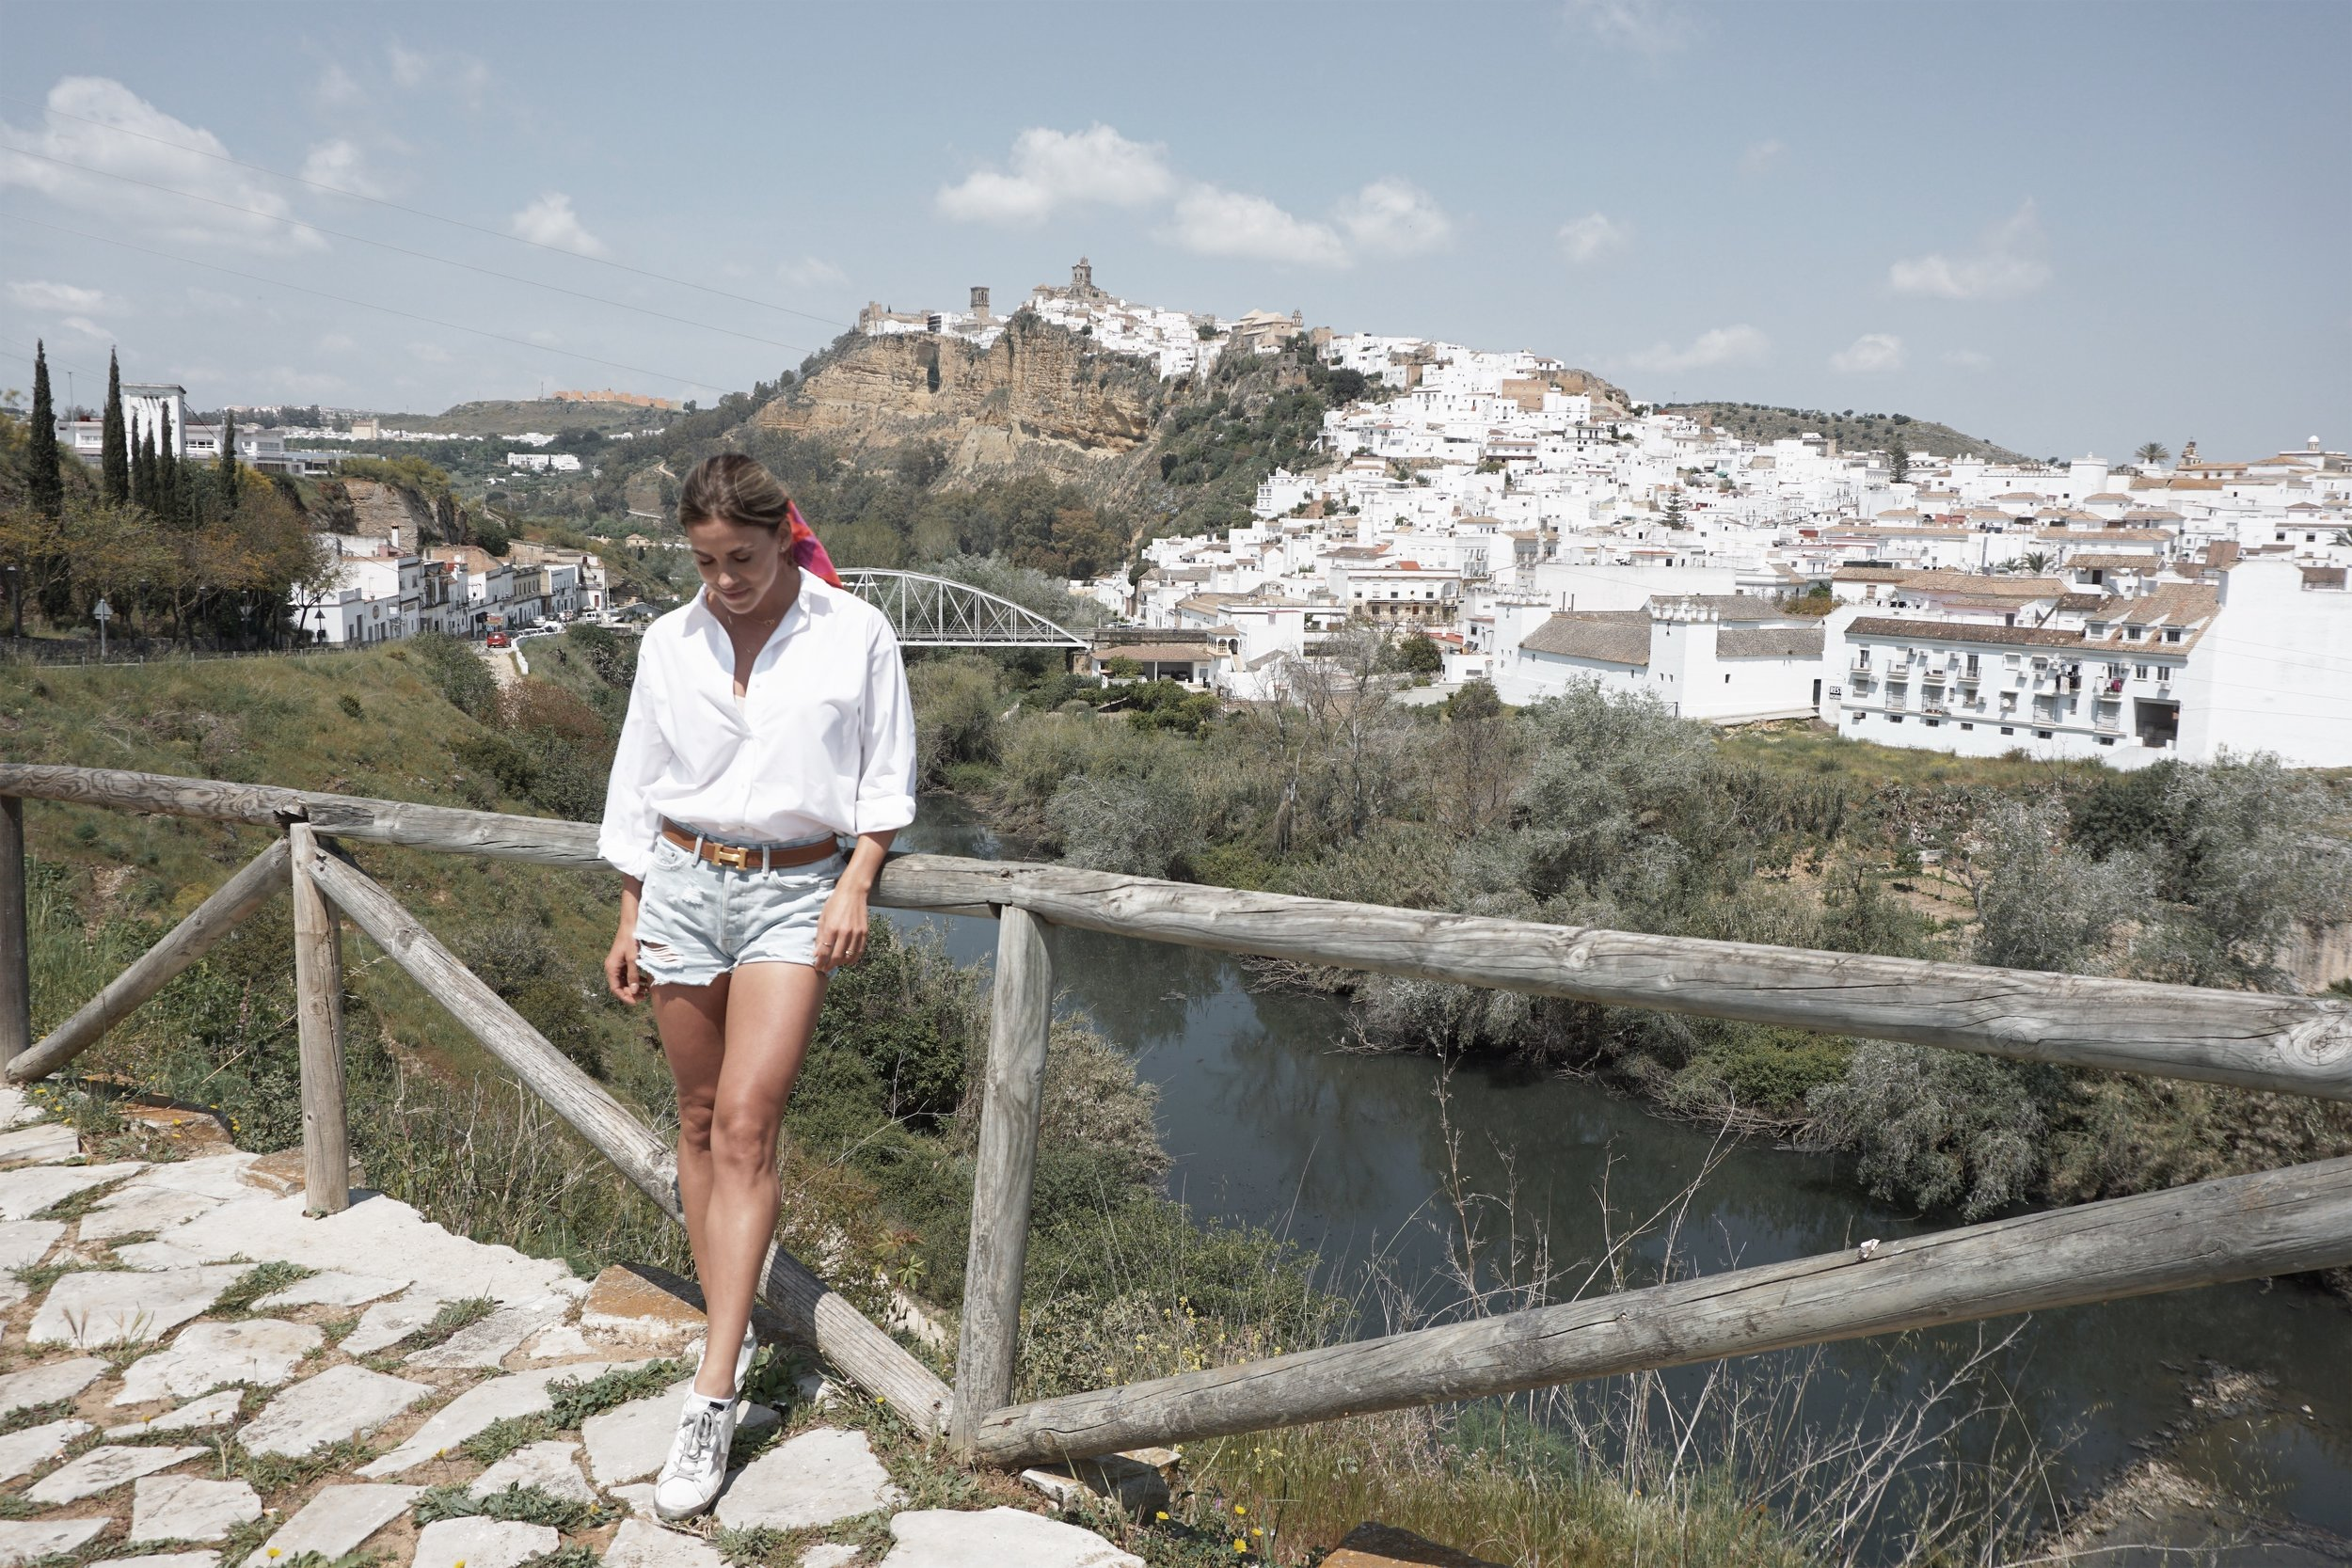 This photo was take at the VIEW POINT area designated to give you the perfect panorama view of Arcos. I will suggest you start here, and then plan your way up.